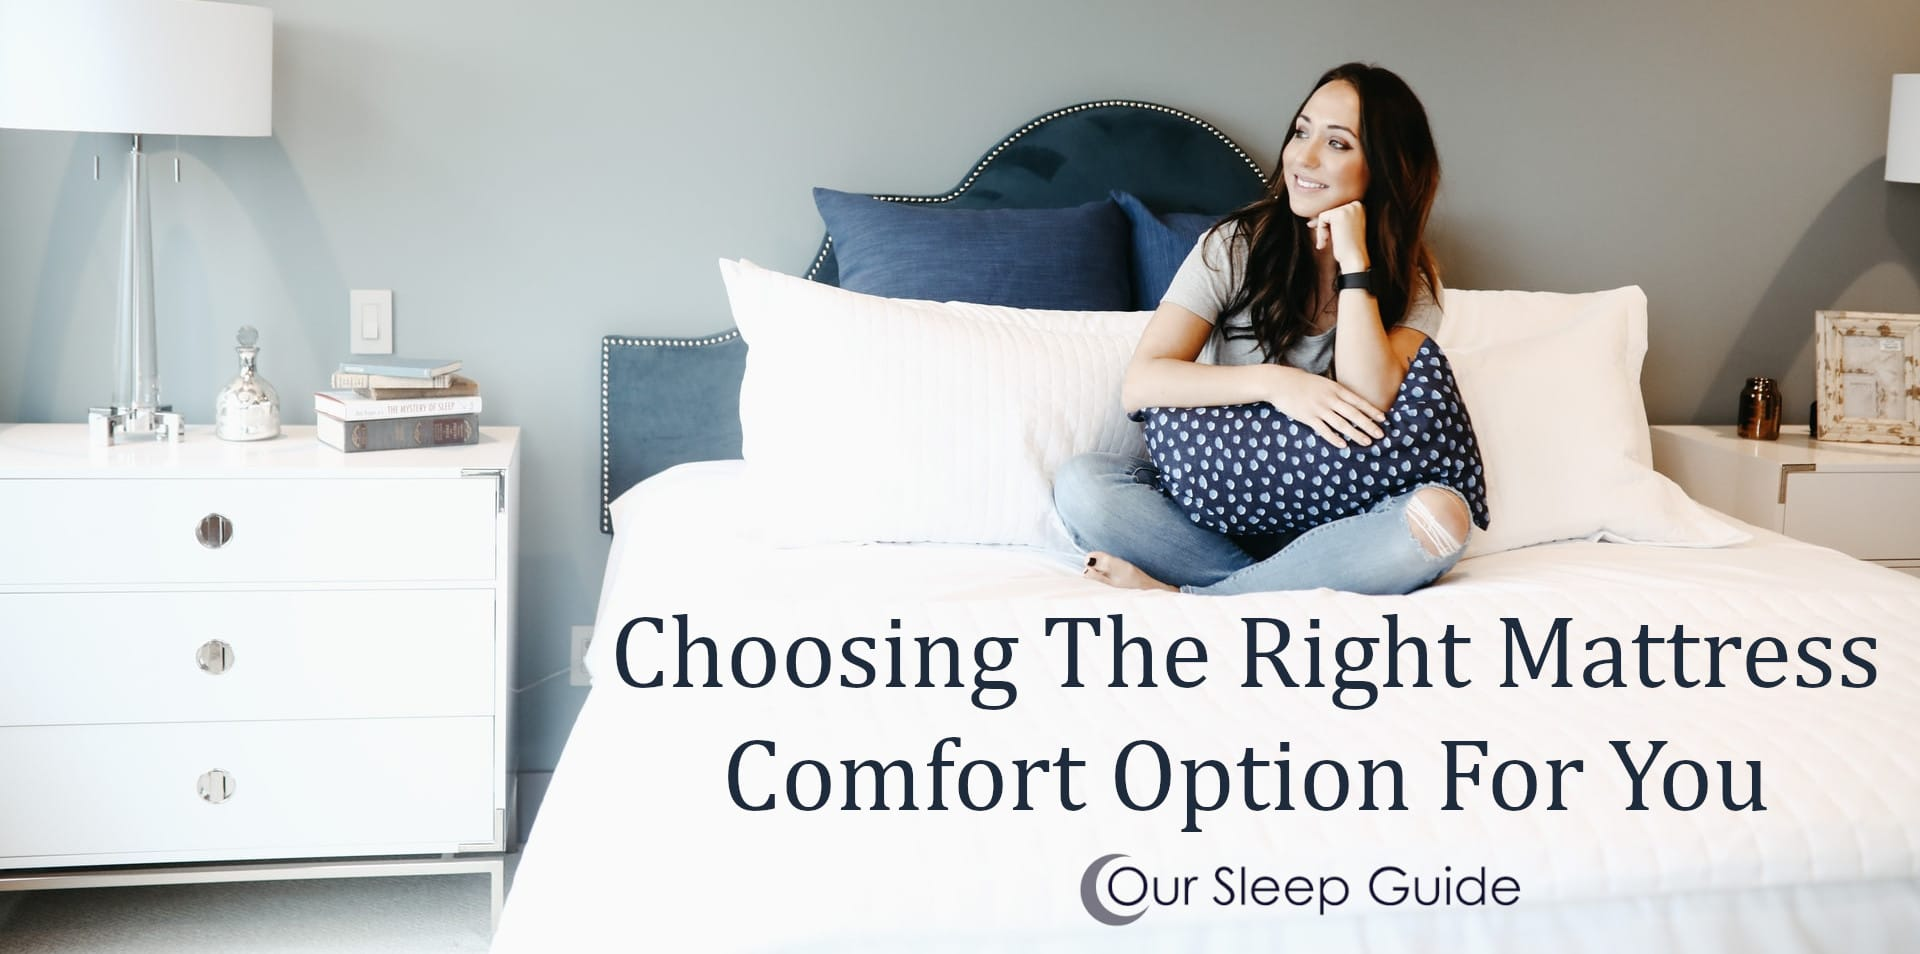 choosing the right mattress comfort options for you